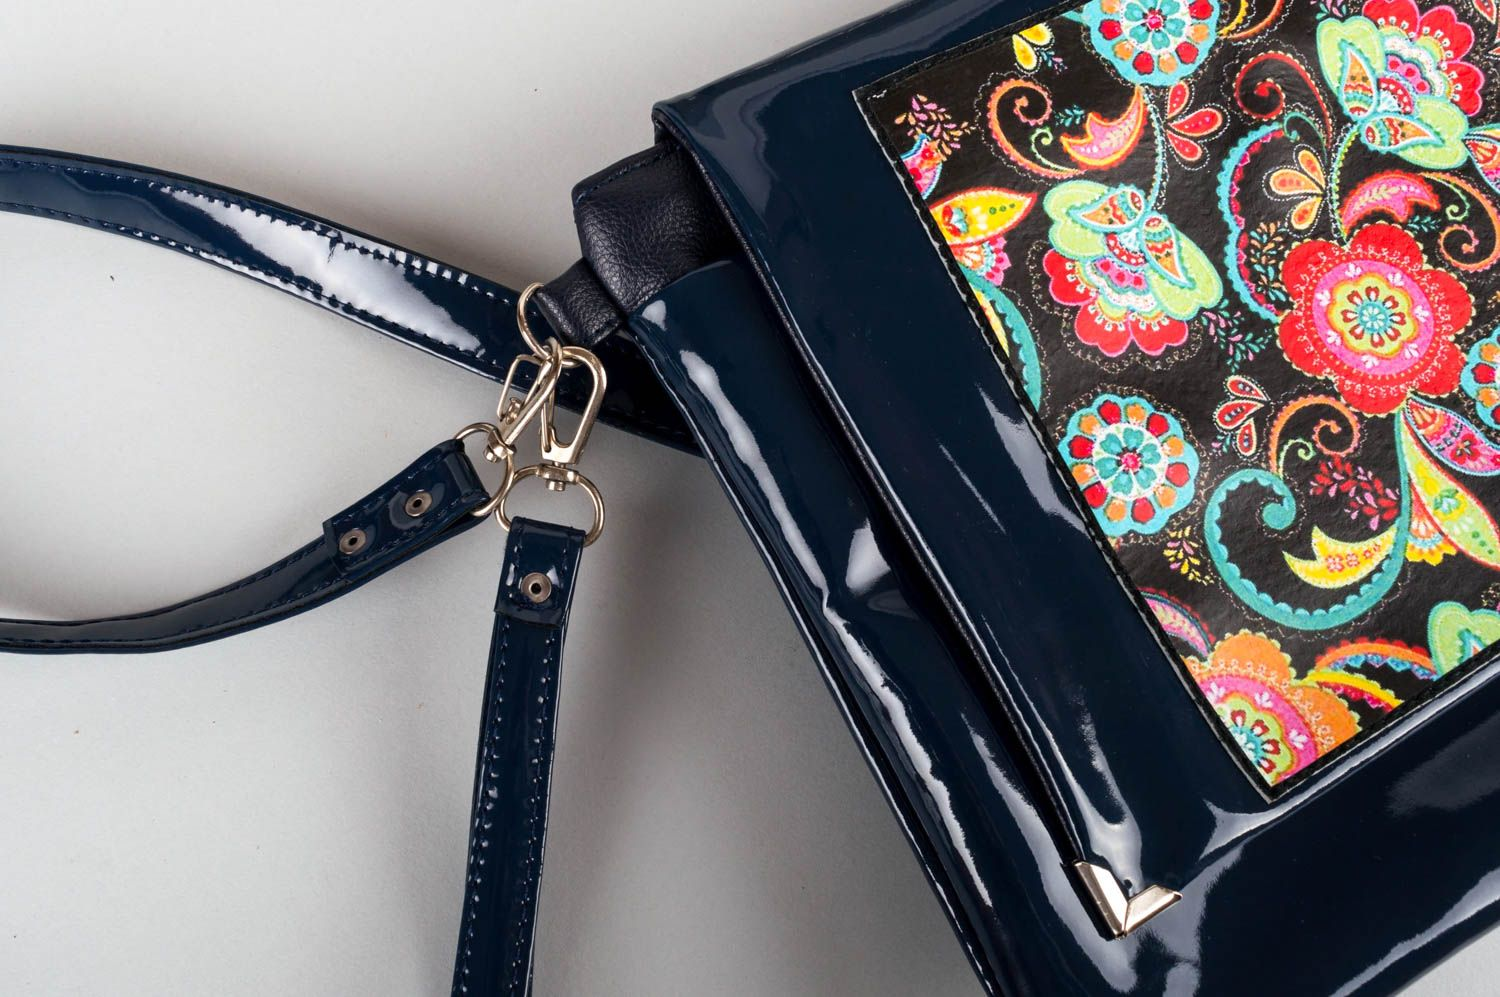 Bag made of artificial leather handmade lacquered clutch colorful accessories photo 6